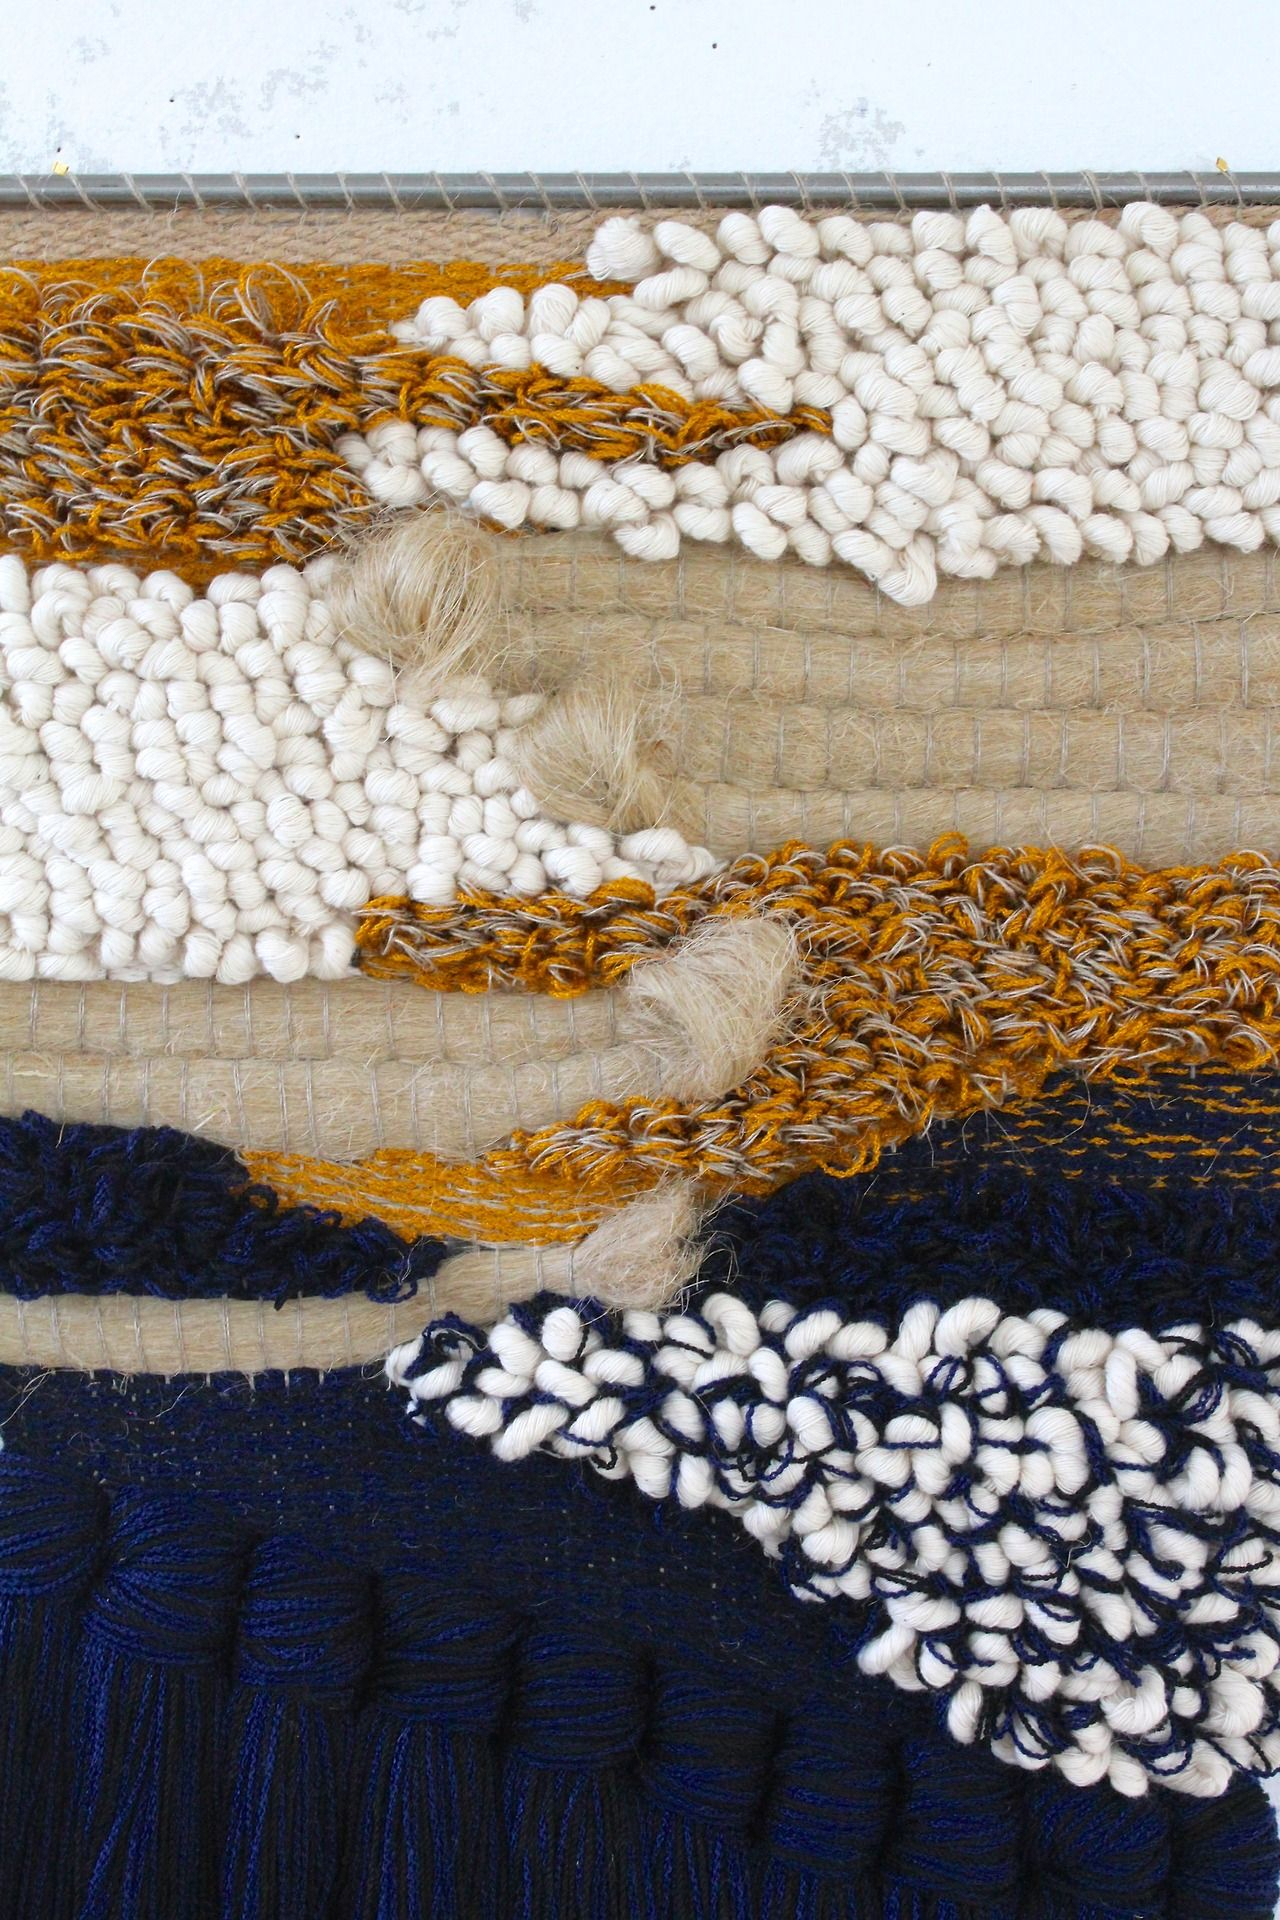 I Really Love The Textural Quality Of This Woven Material In 2018 Blended Fabric In His Tapestries And Wall Hangings (View 9 of 20)